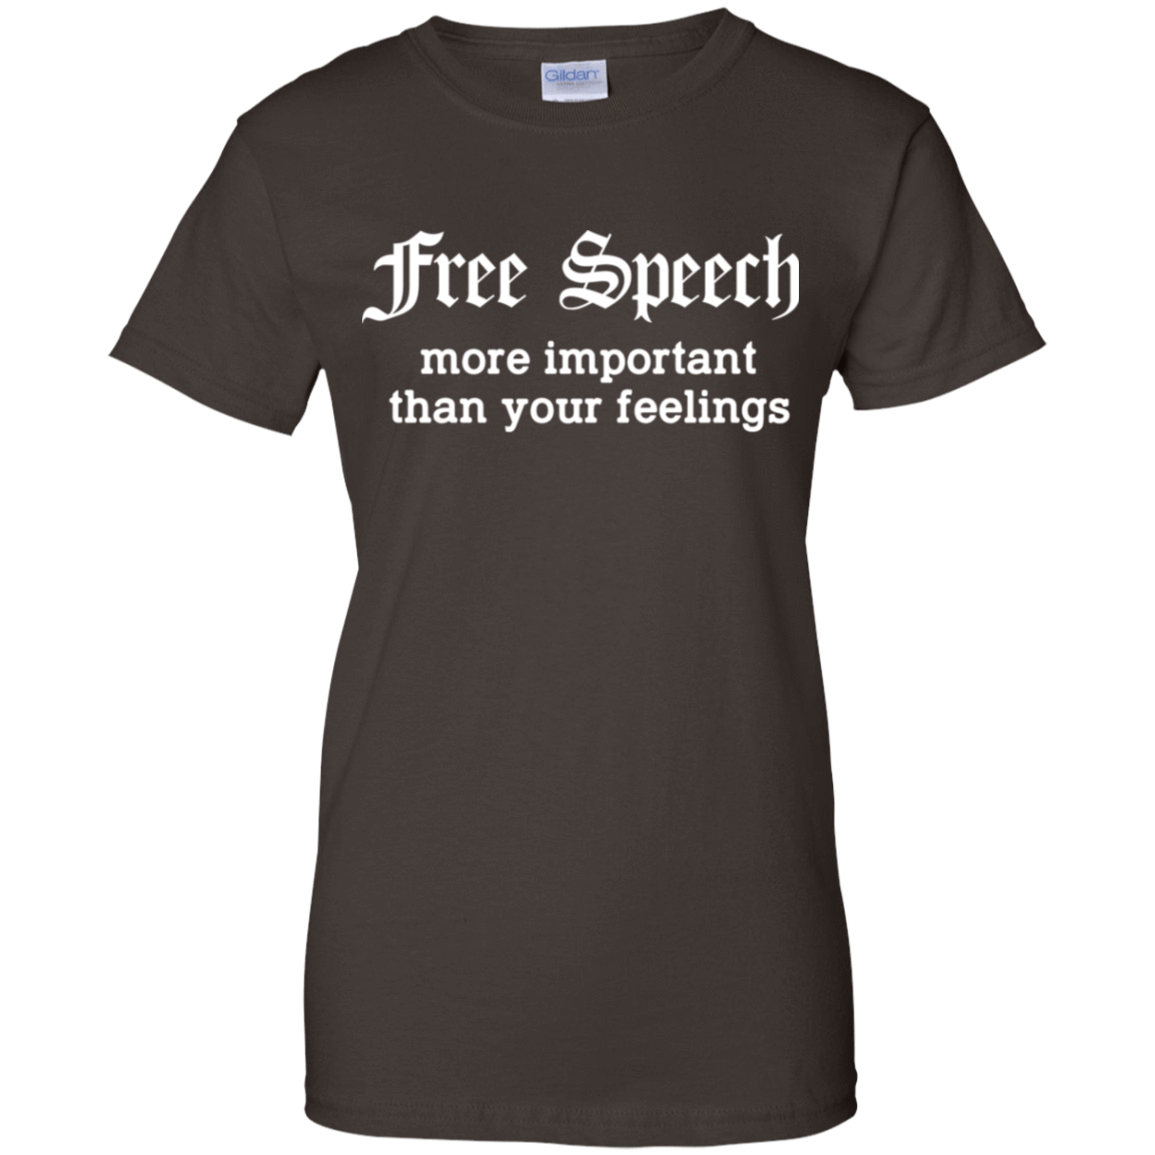 Free Speech More Important Than Your Feelings 939-9251-74209400-44702 - Tee Ript